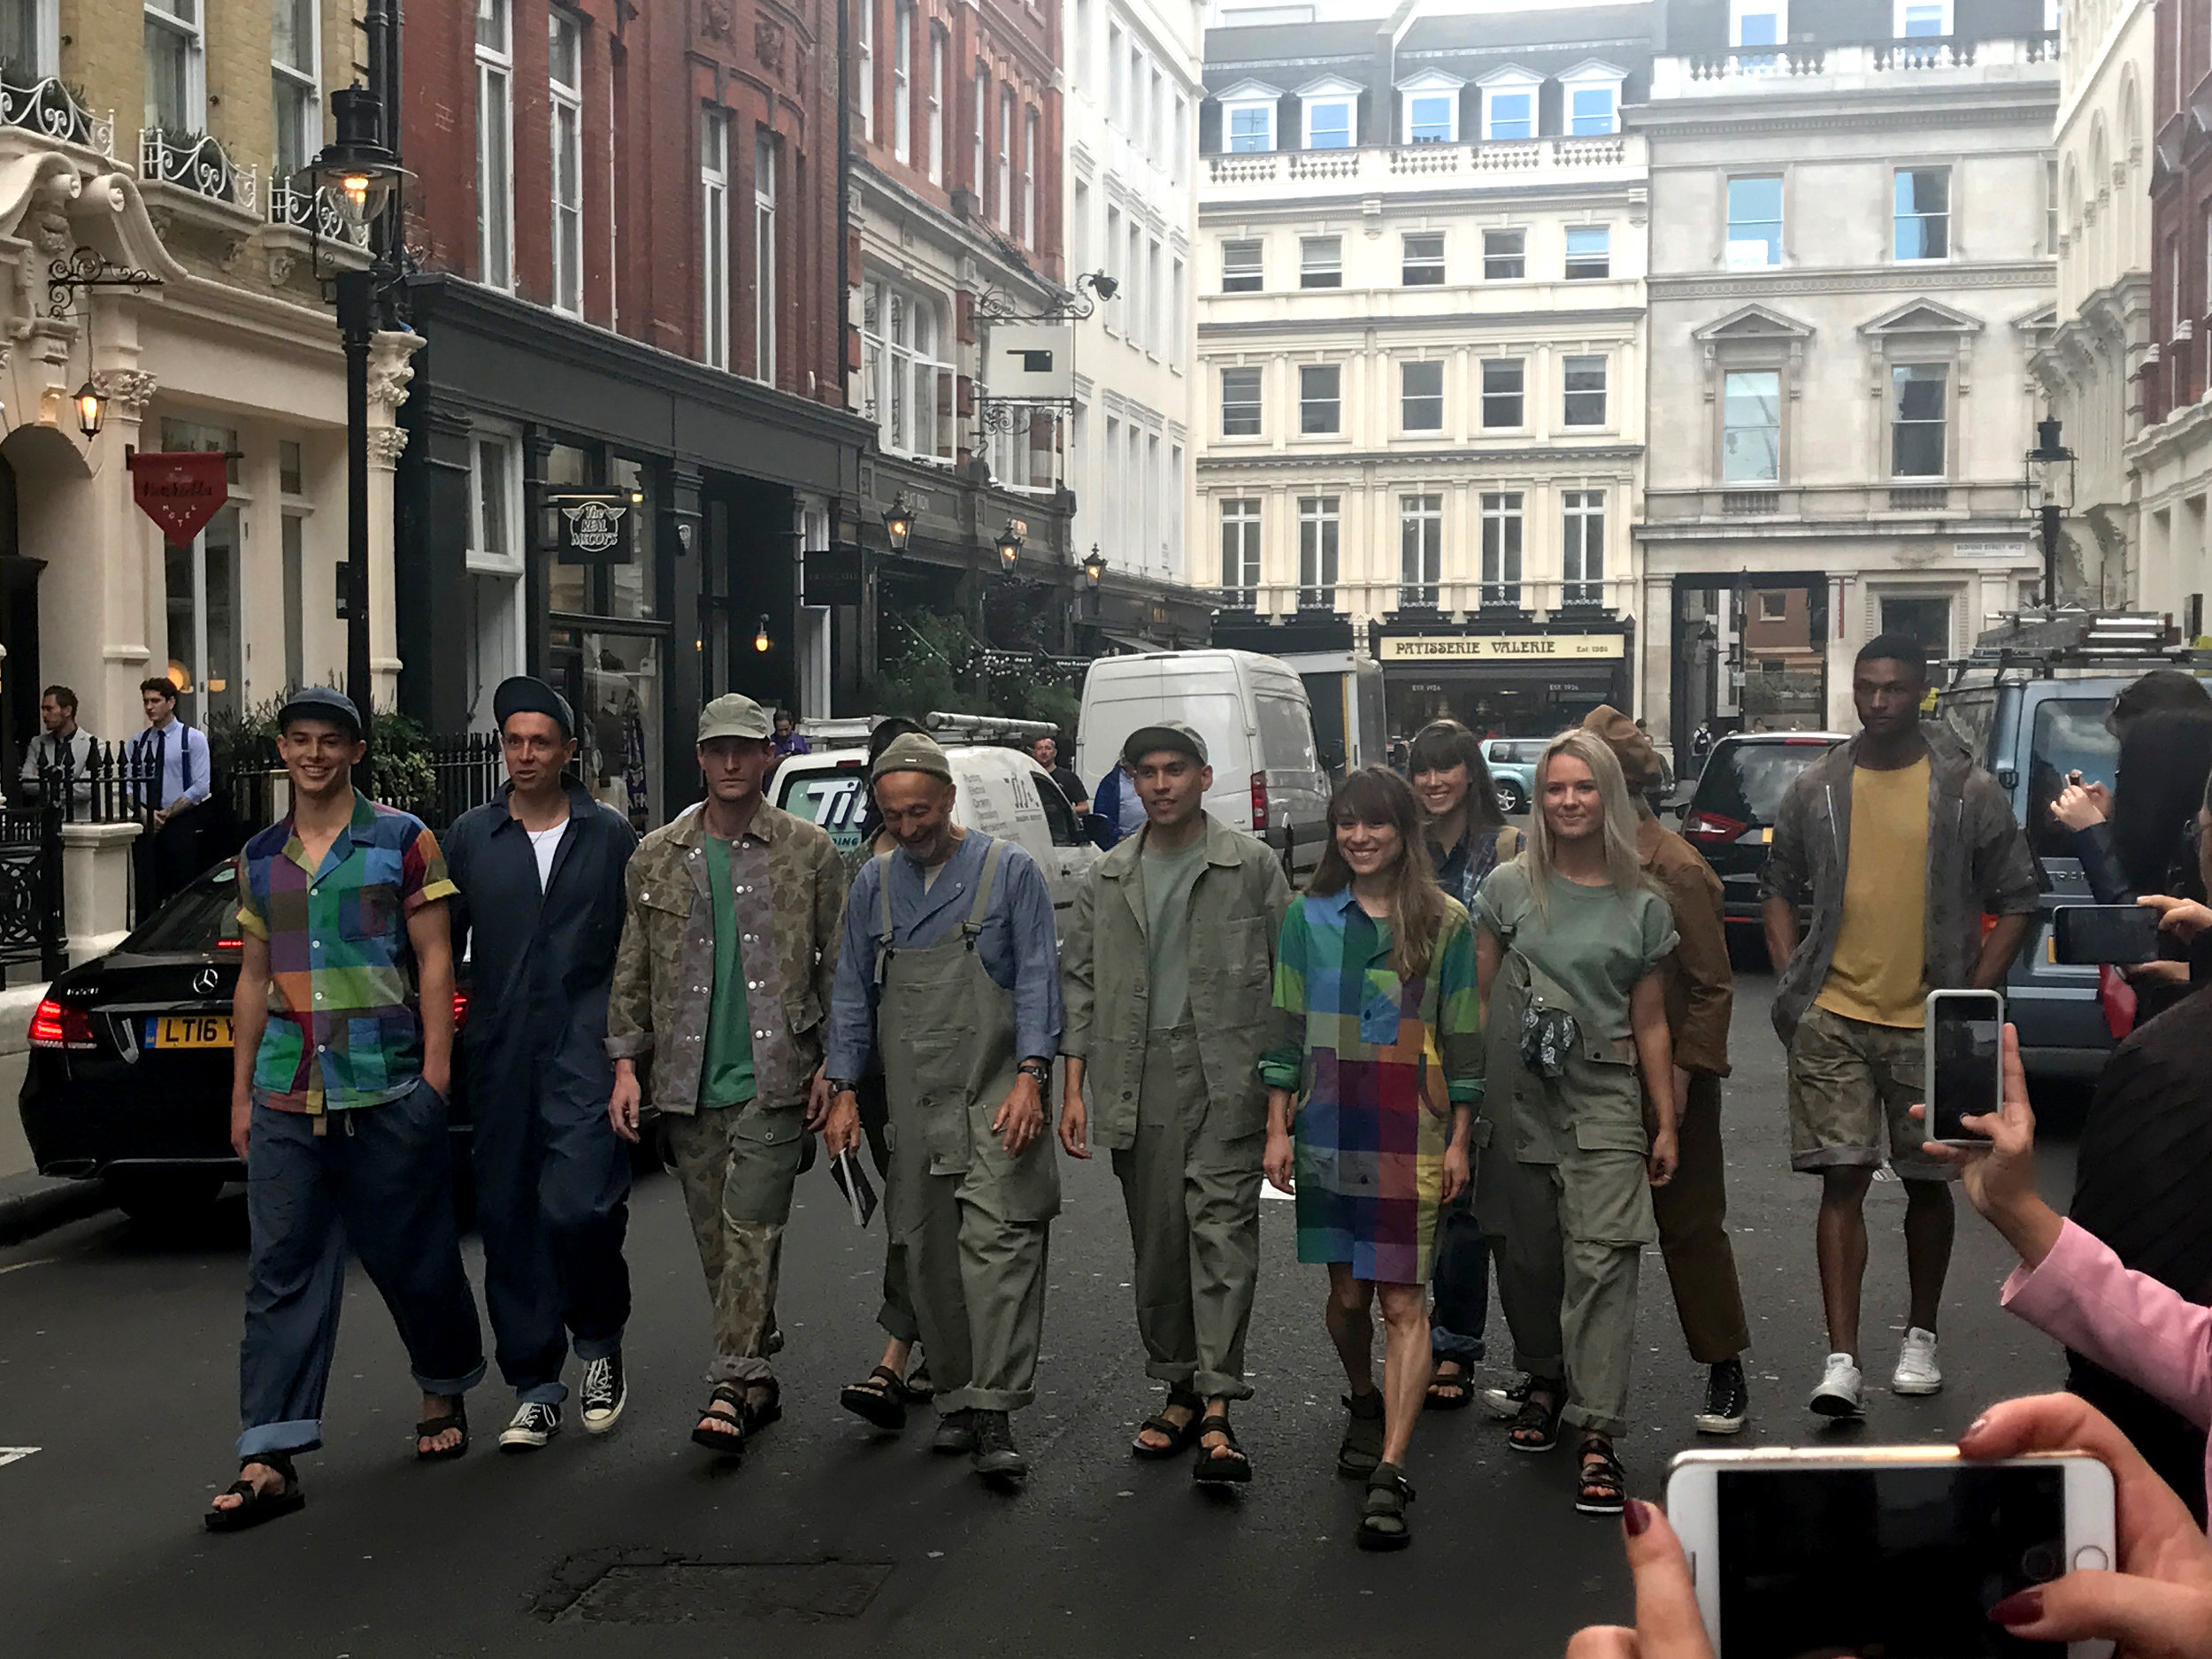 SS18 Collection Nigel Cabowin